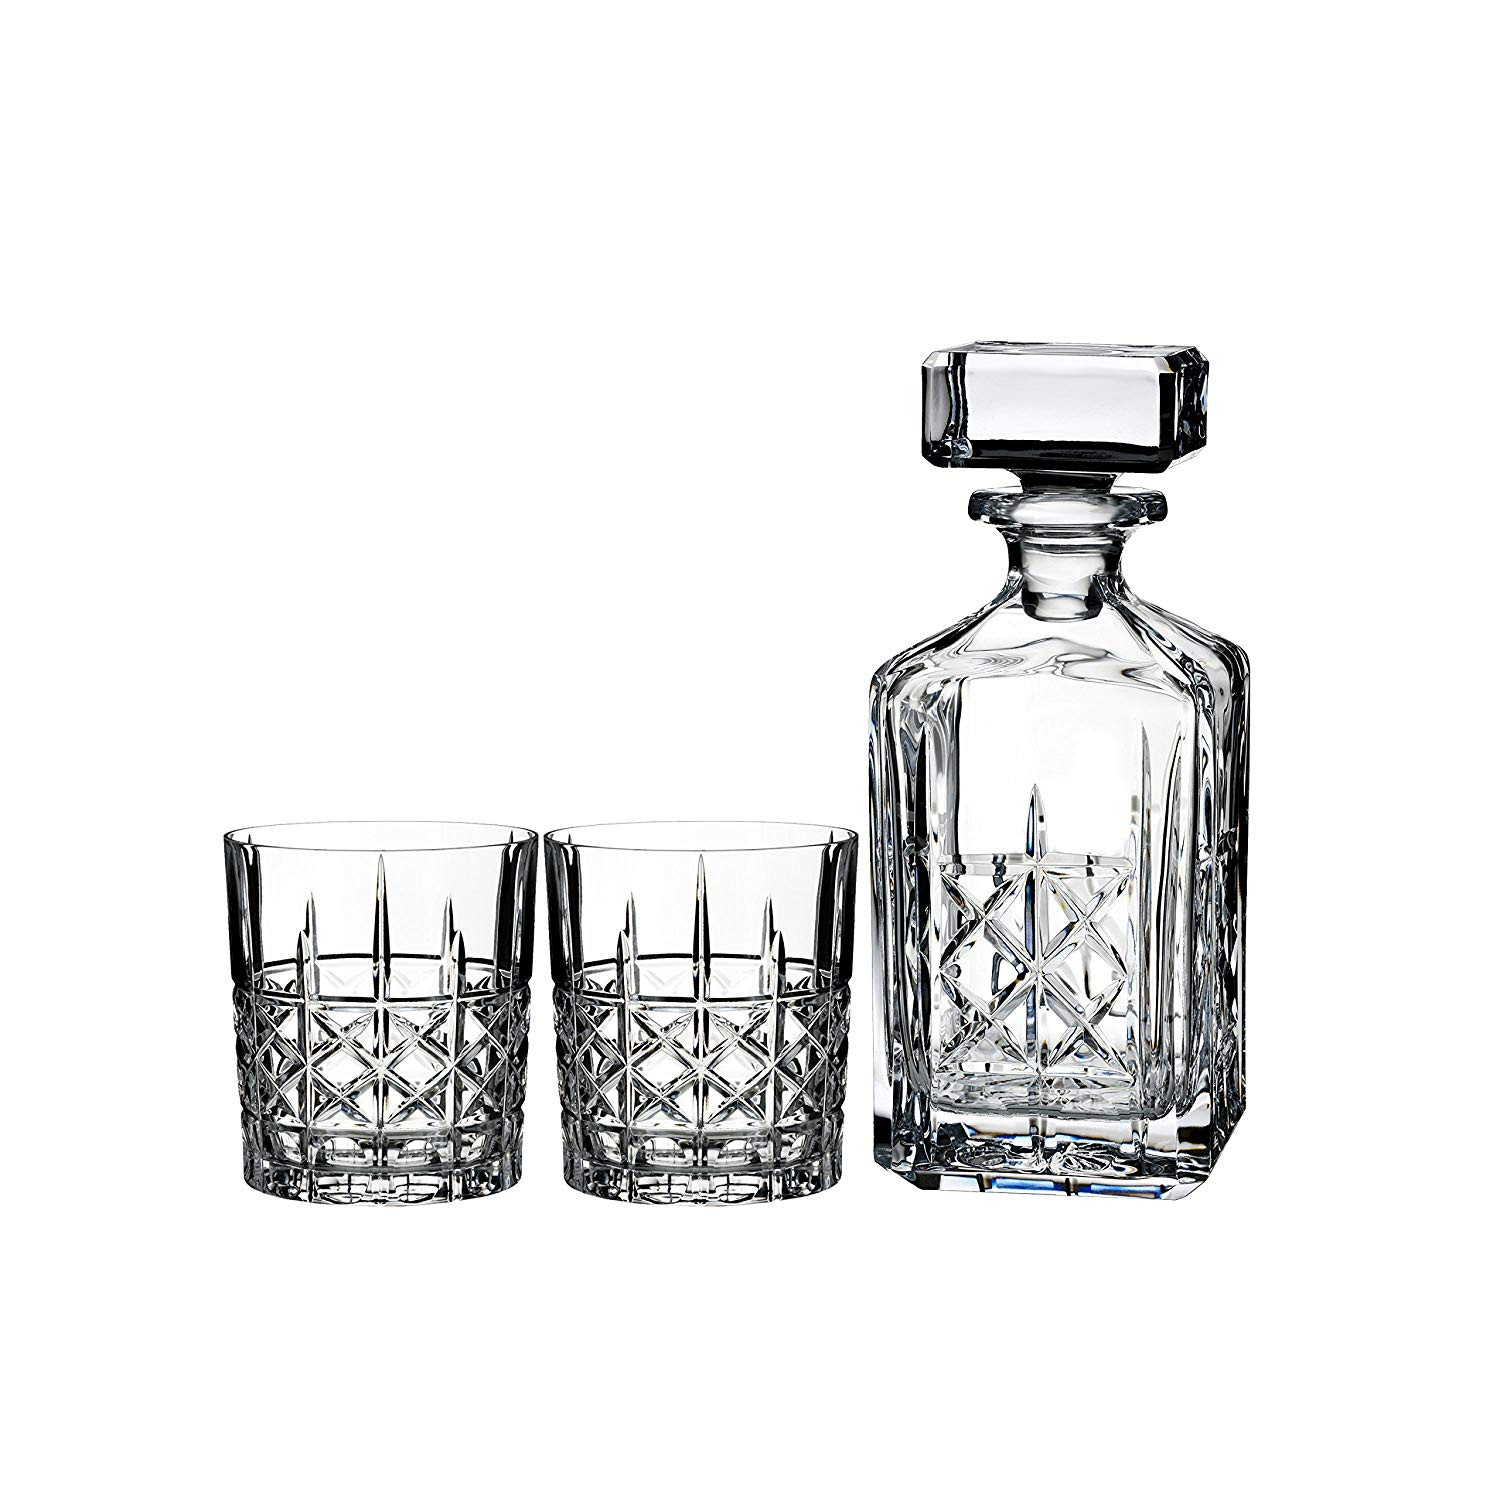 Heritage Irish Crystal Vase Of Amazon Com Marquis by Waterford Brady Decanter and Double Old In Amazon Com Marquis by Waterford Brady Decanter and Double Old Fashion Set Decanters